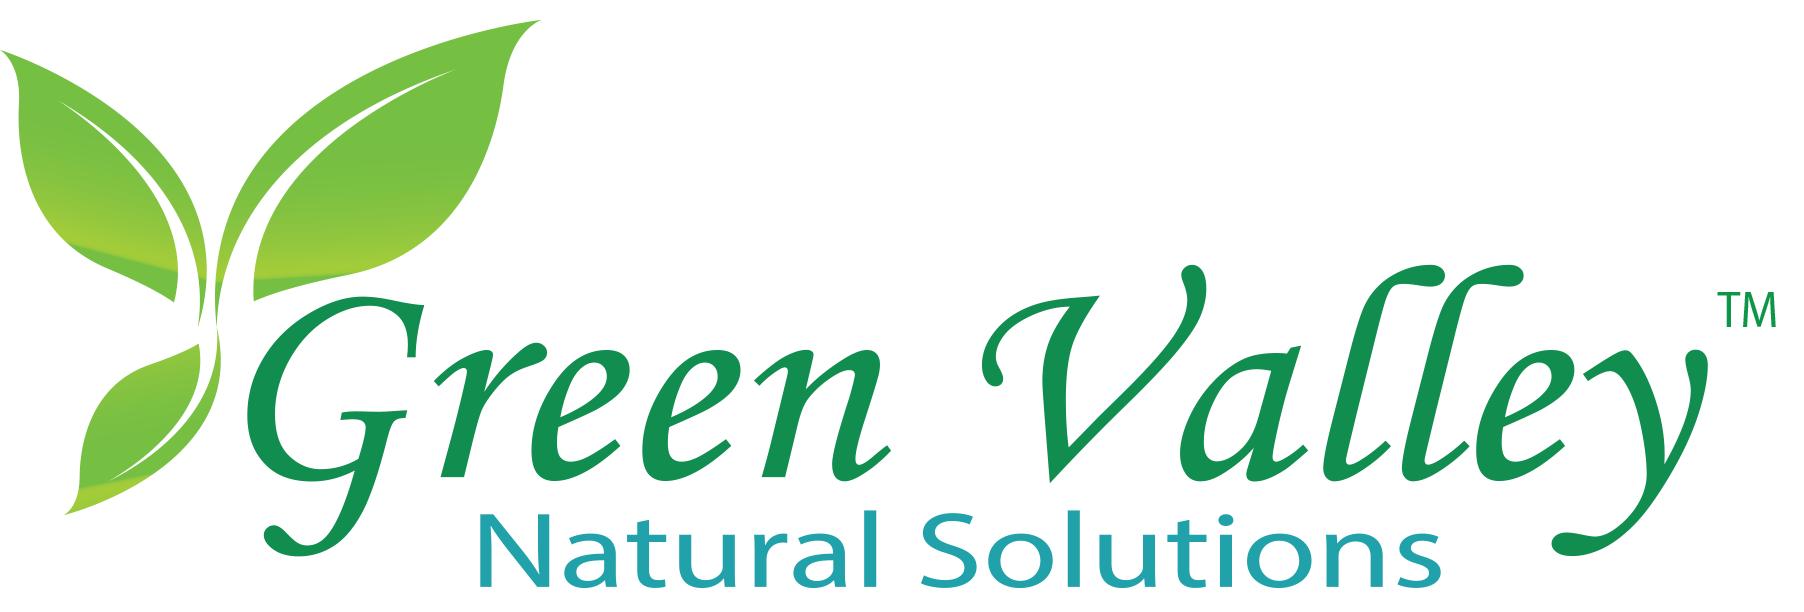 Green Valley Solution Retina Logo